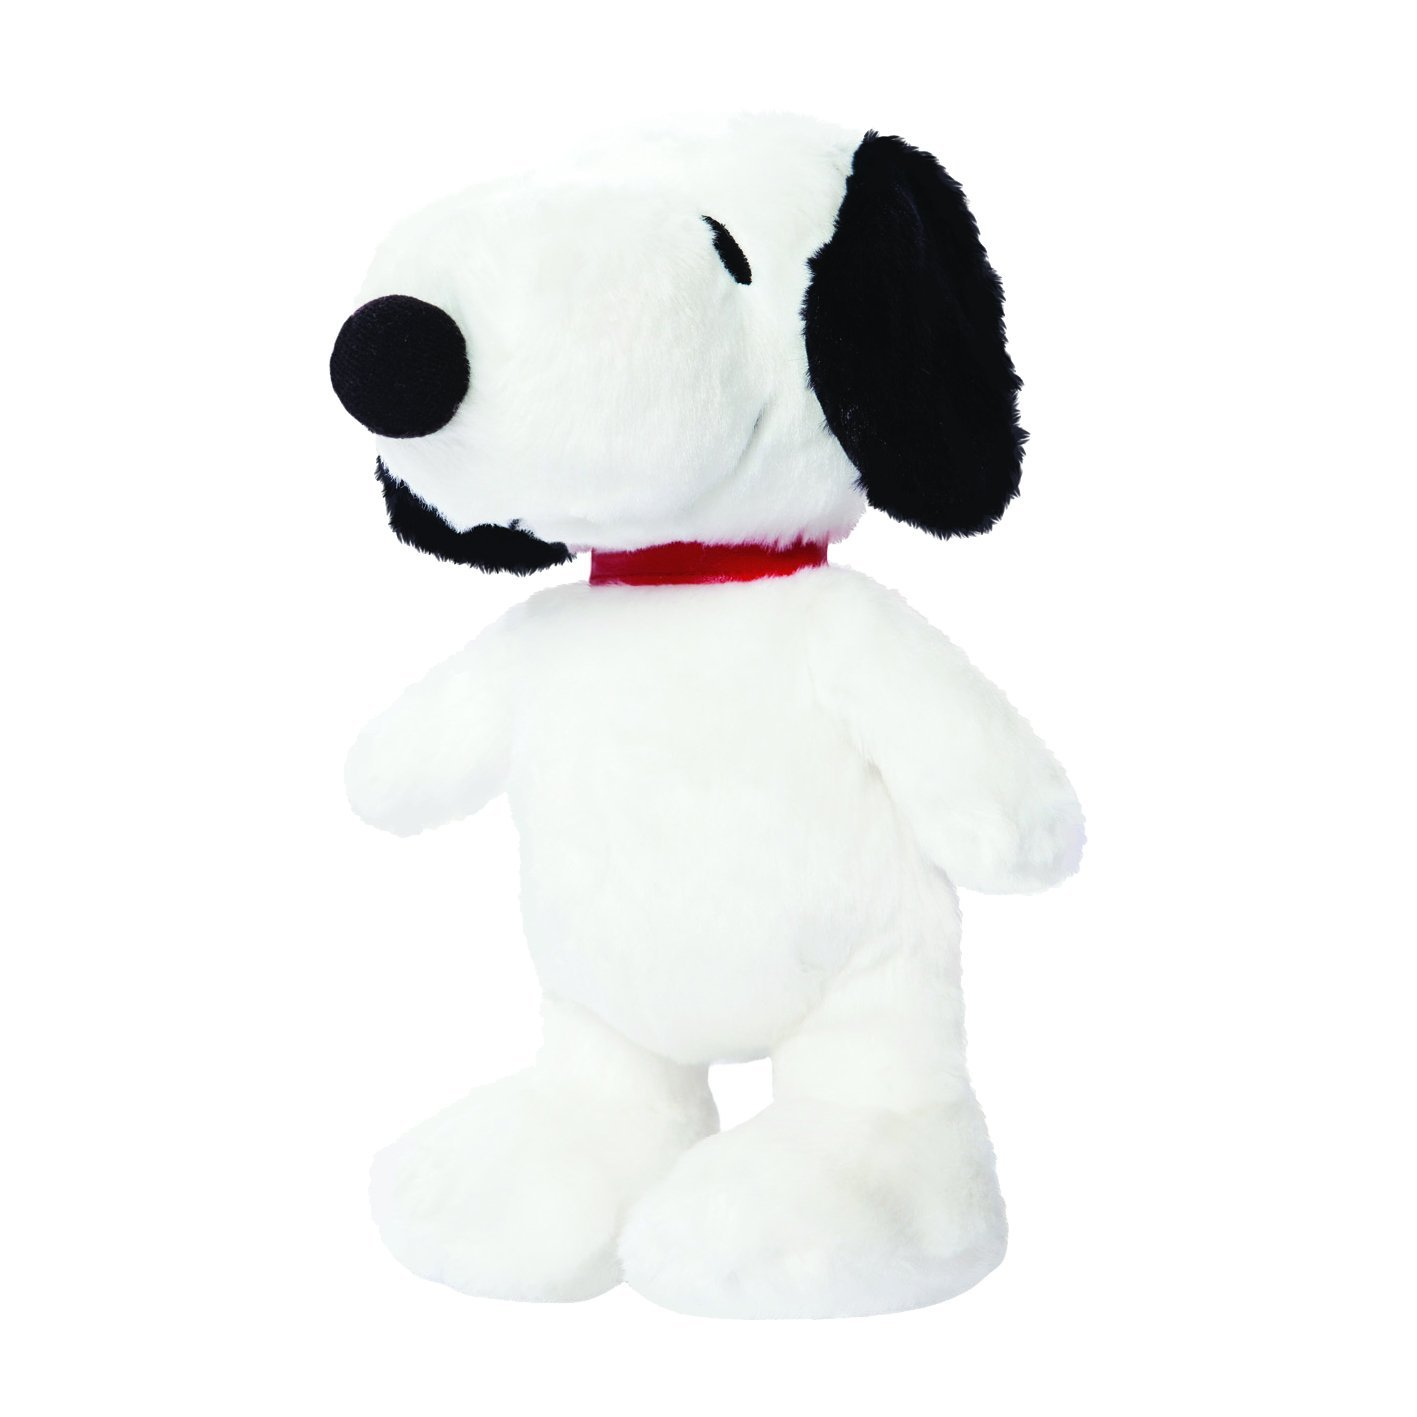 7 5 Snoopy Plush Soft Toy Aurora Snoopy Soft Toy By Peanuts